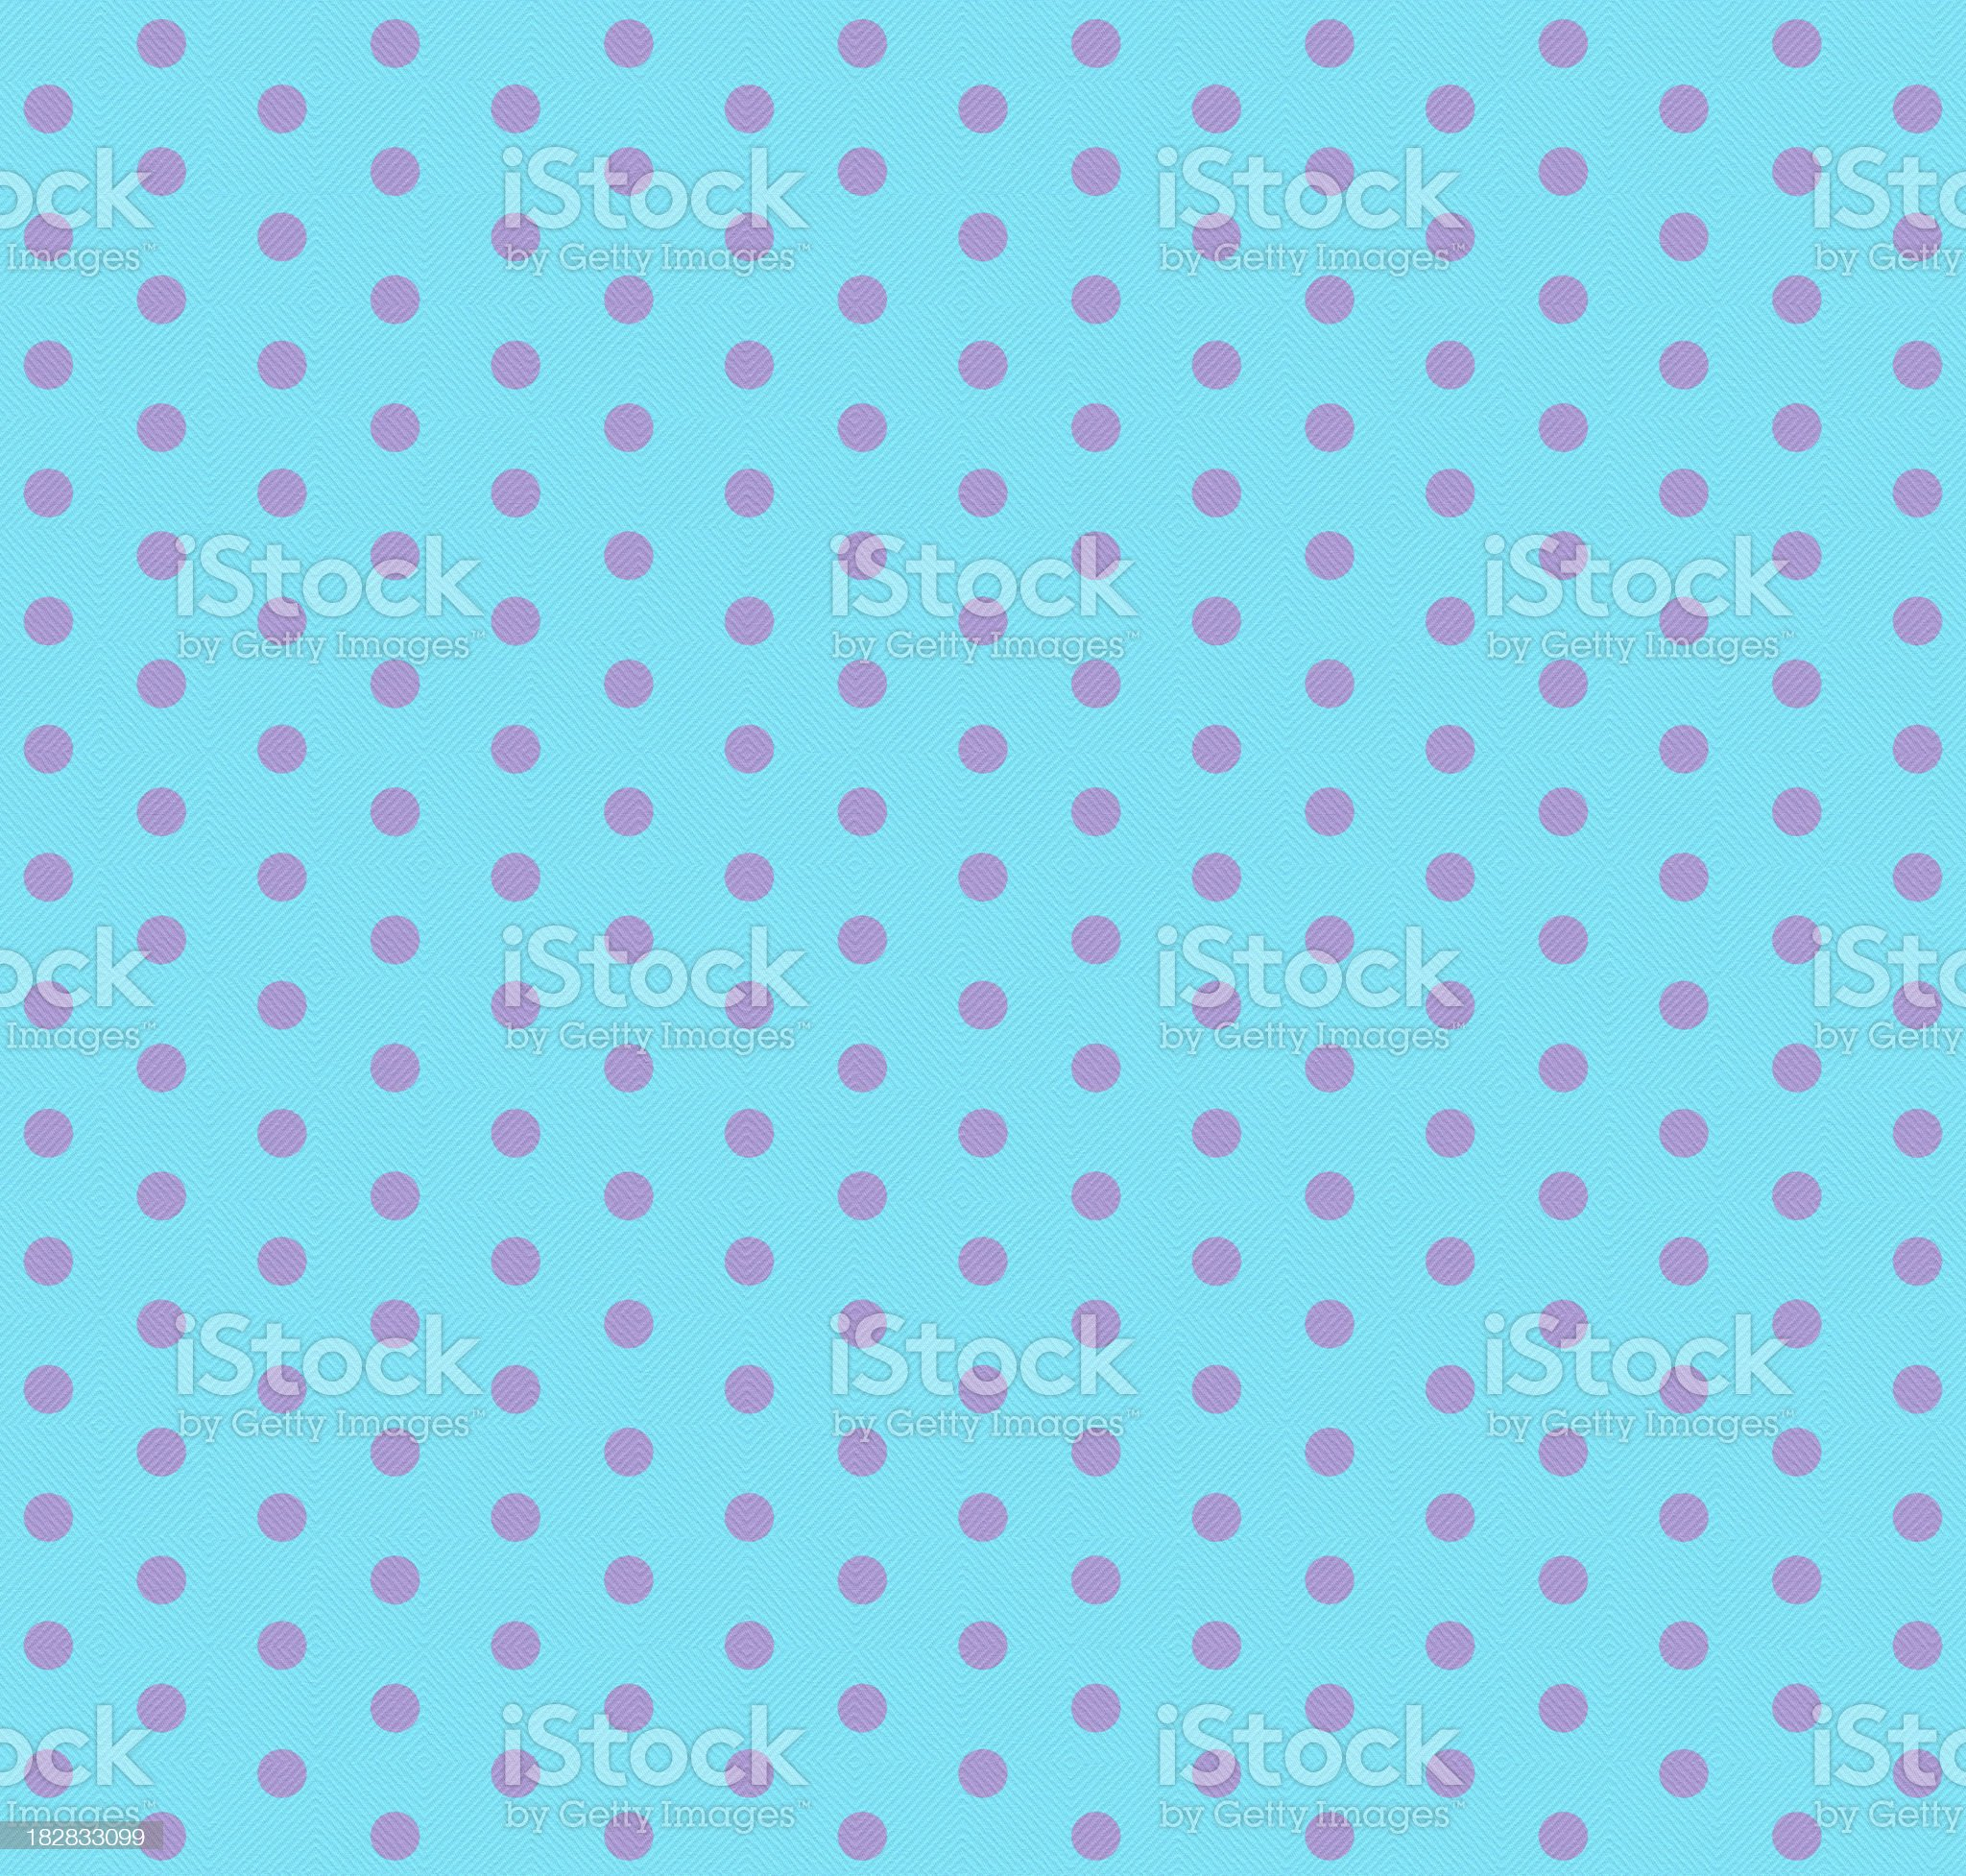 Turquoise and Pink Dots royalty-free stock photo